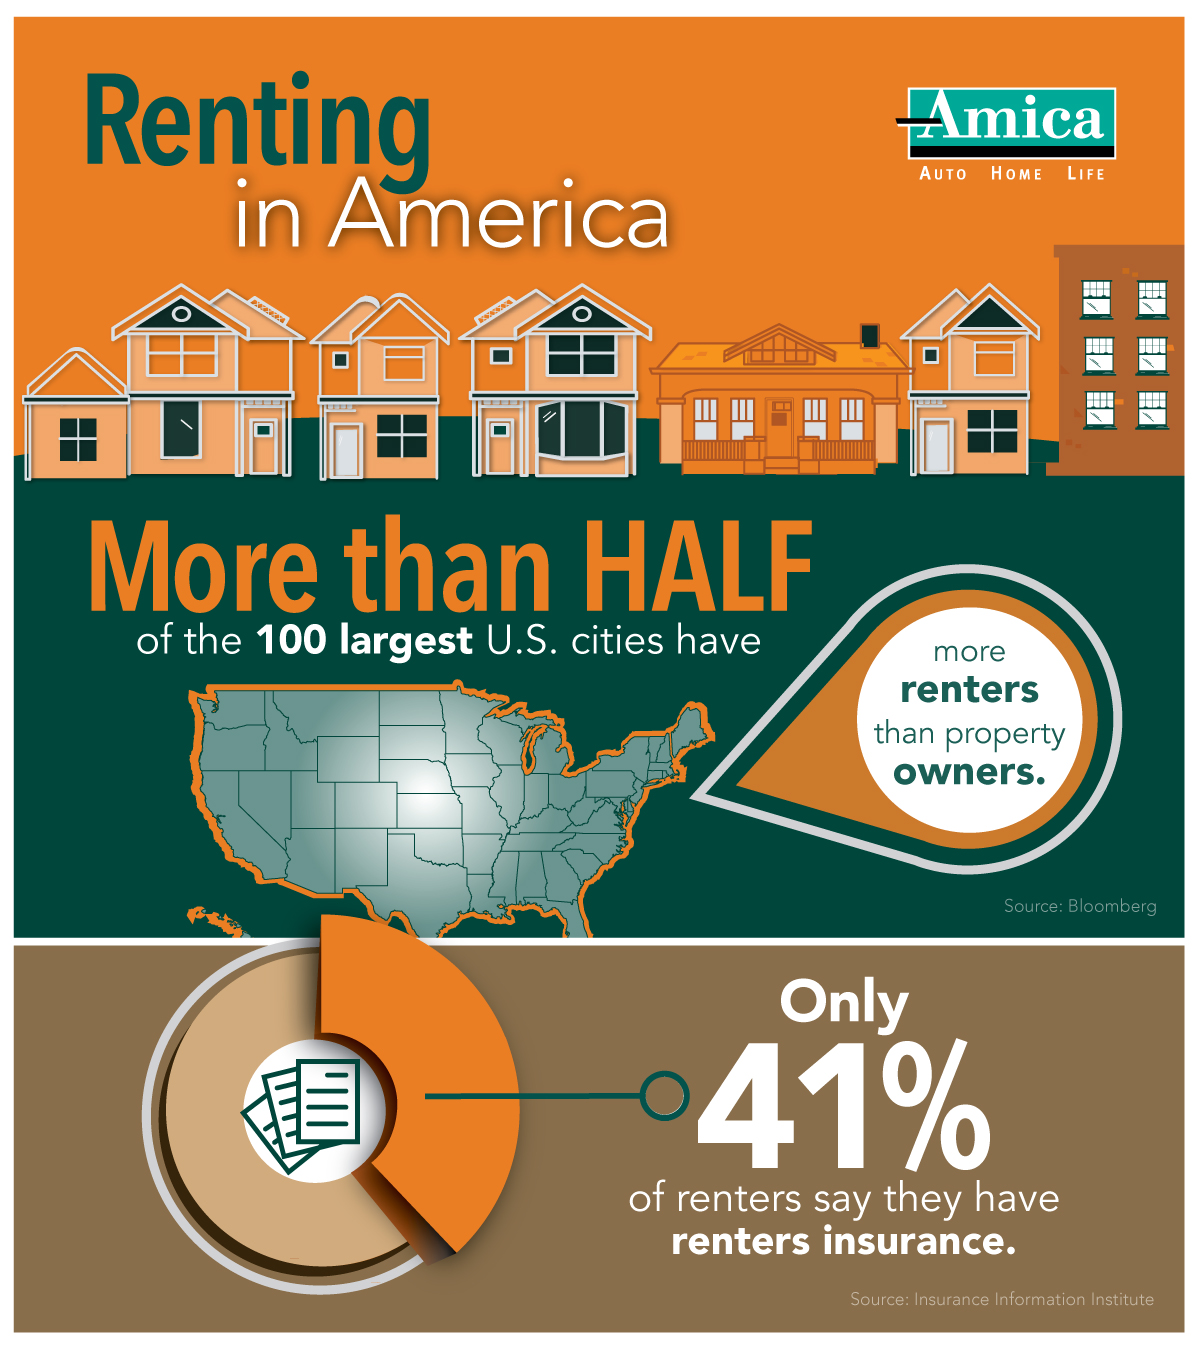 Renters Com: With Renting On The Rise, Amica Insurance Shares The Need